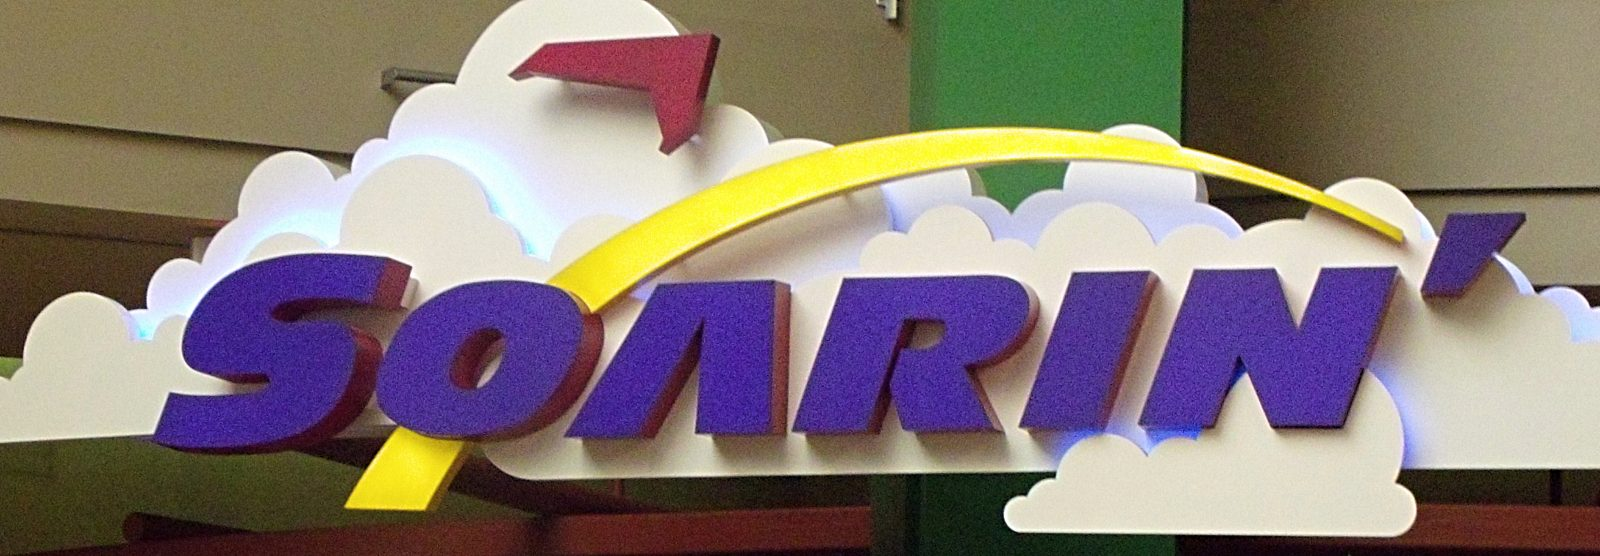 soarin ride sign